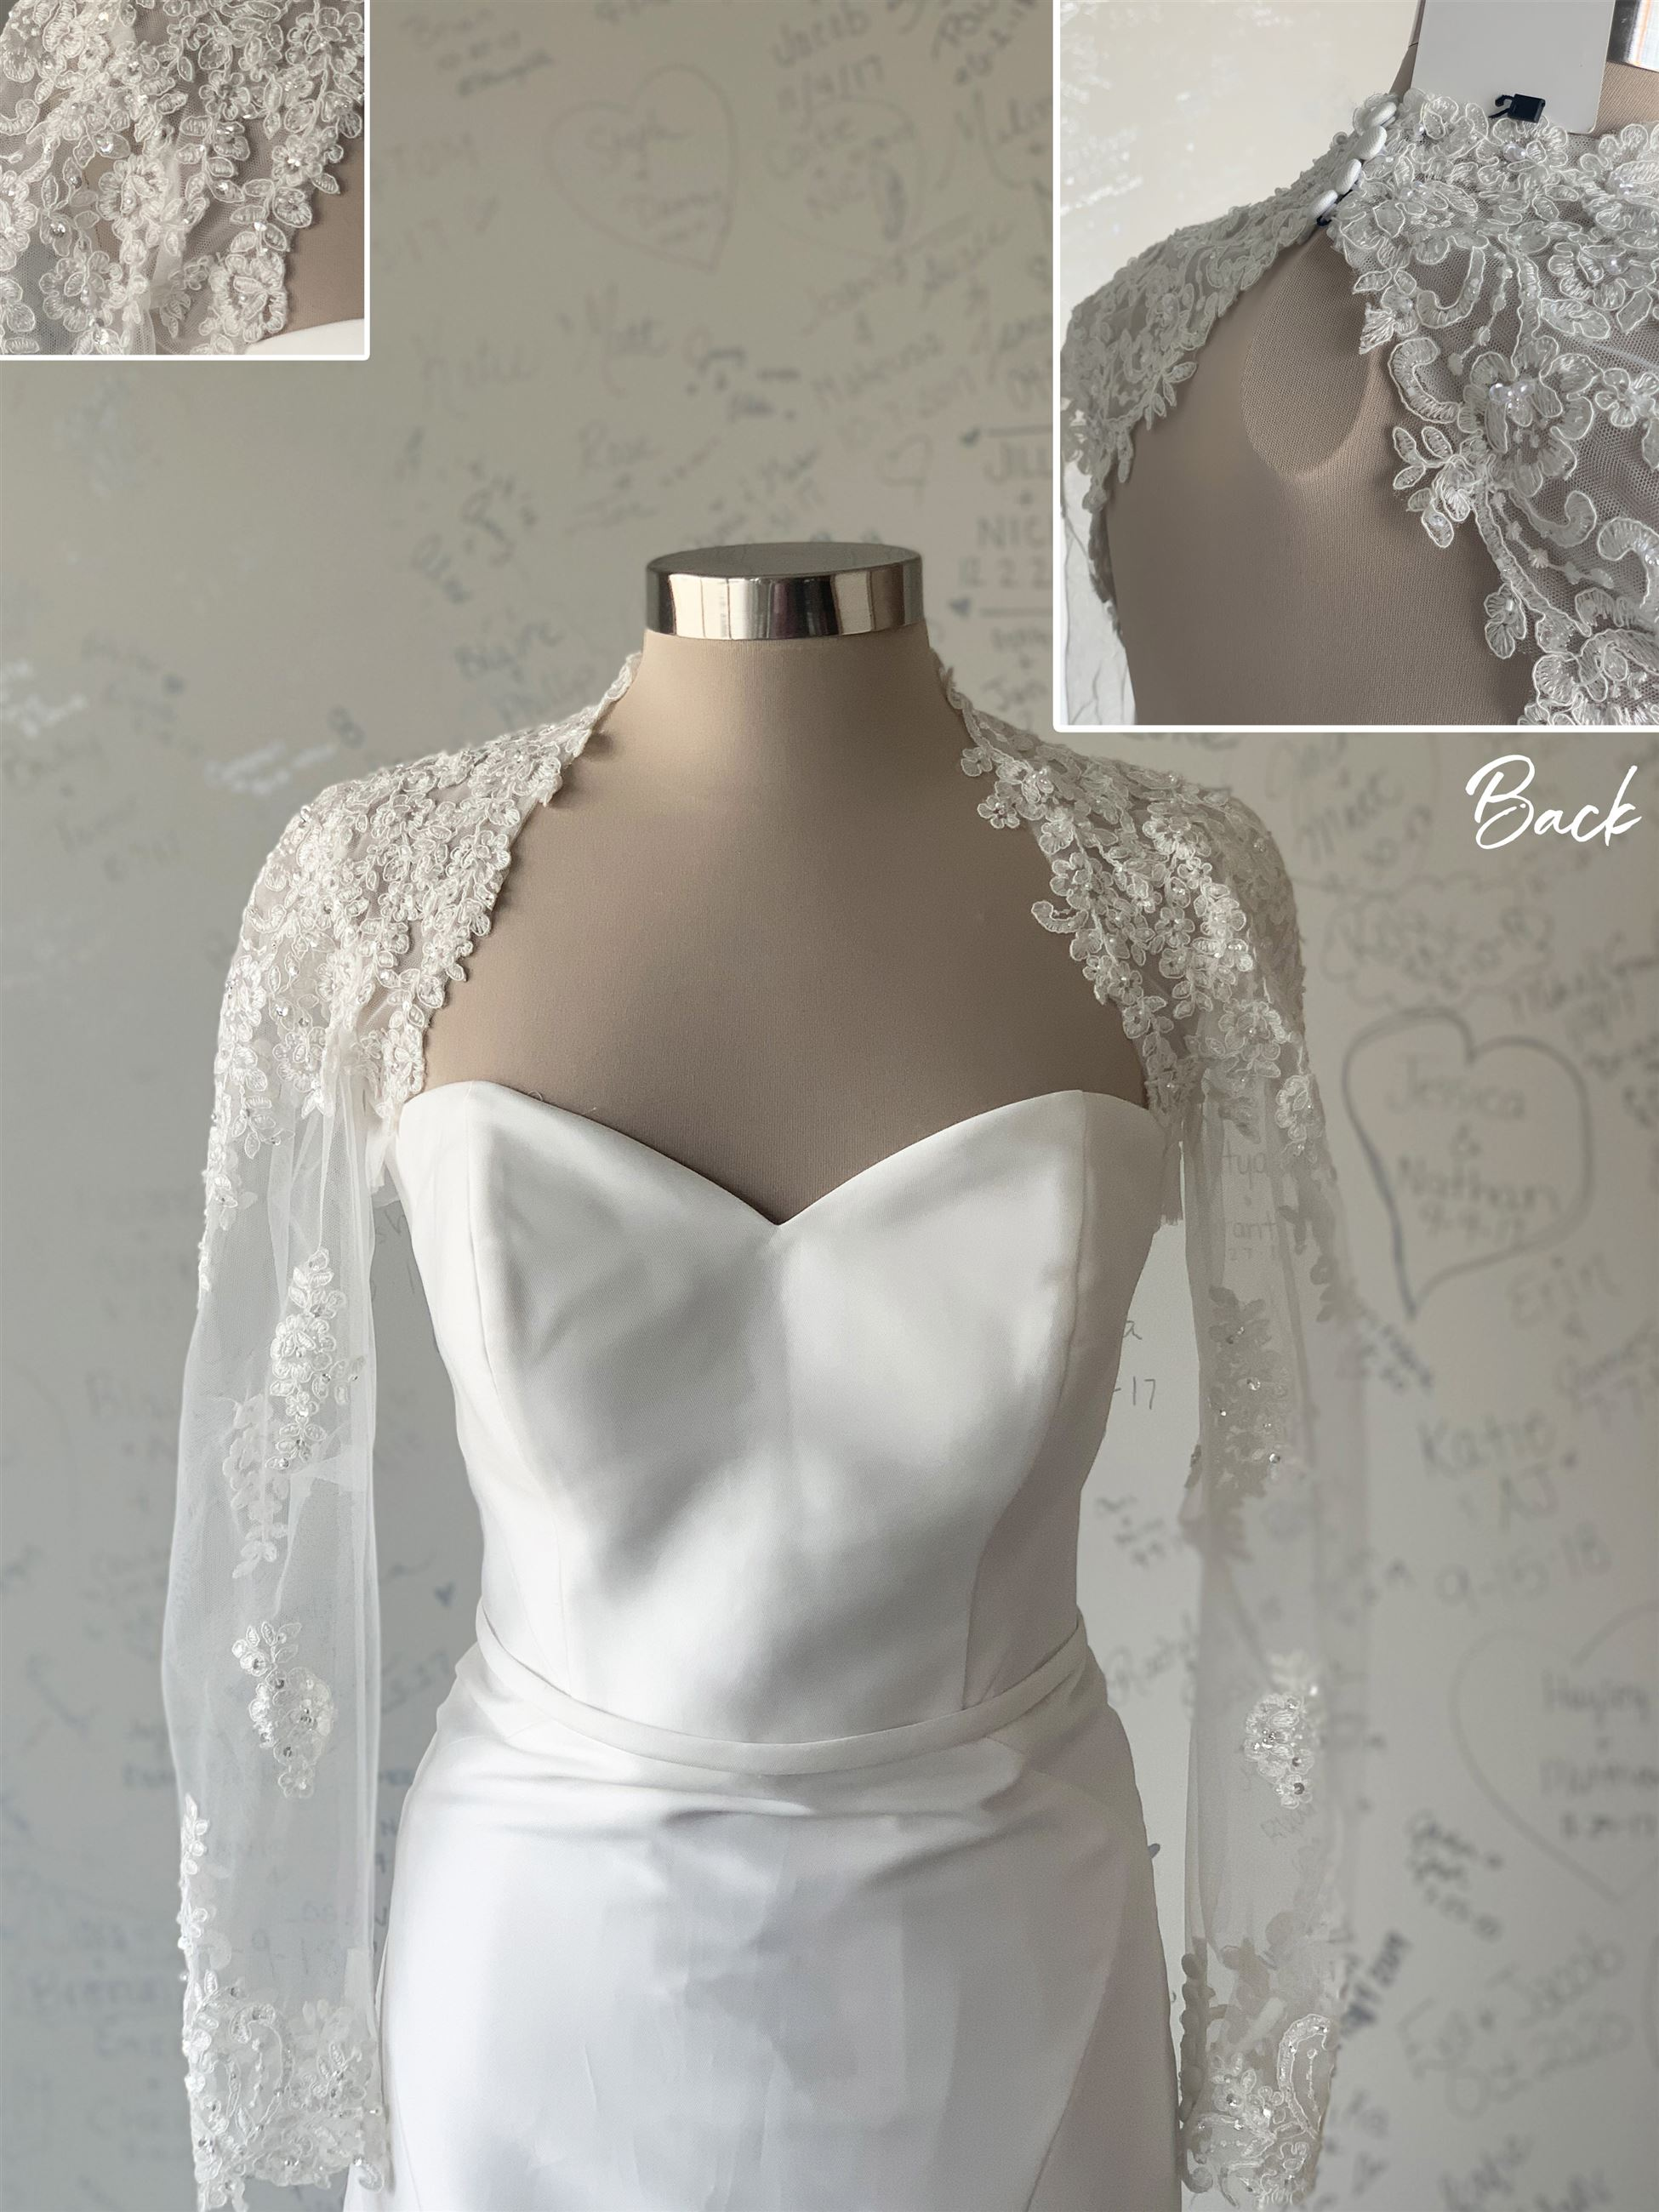 Shoulder Sleeves - Keyhole Back - Size 8 and 18 available in ivory - $273